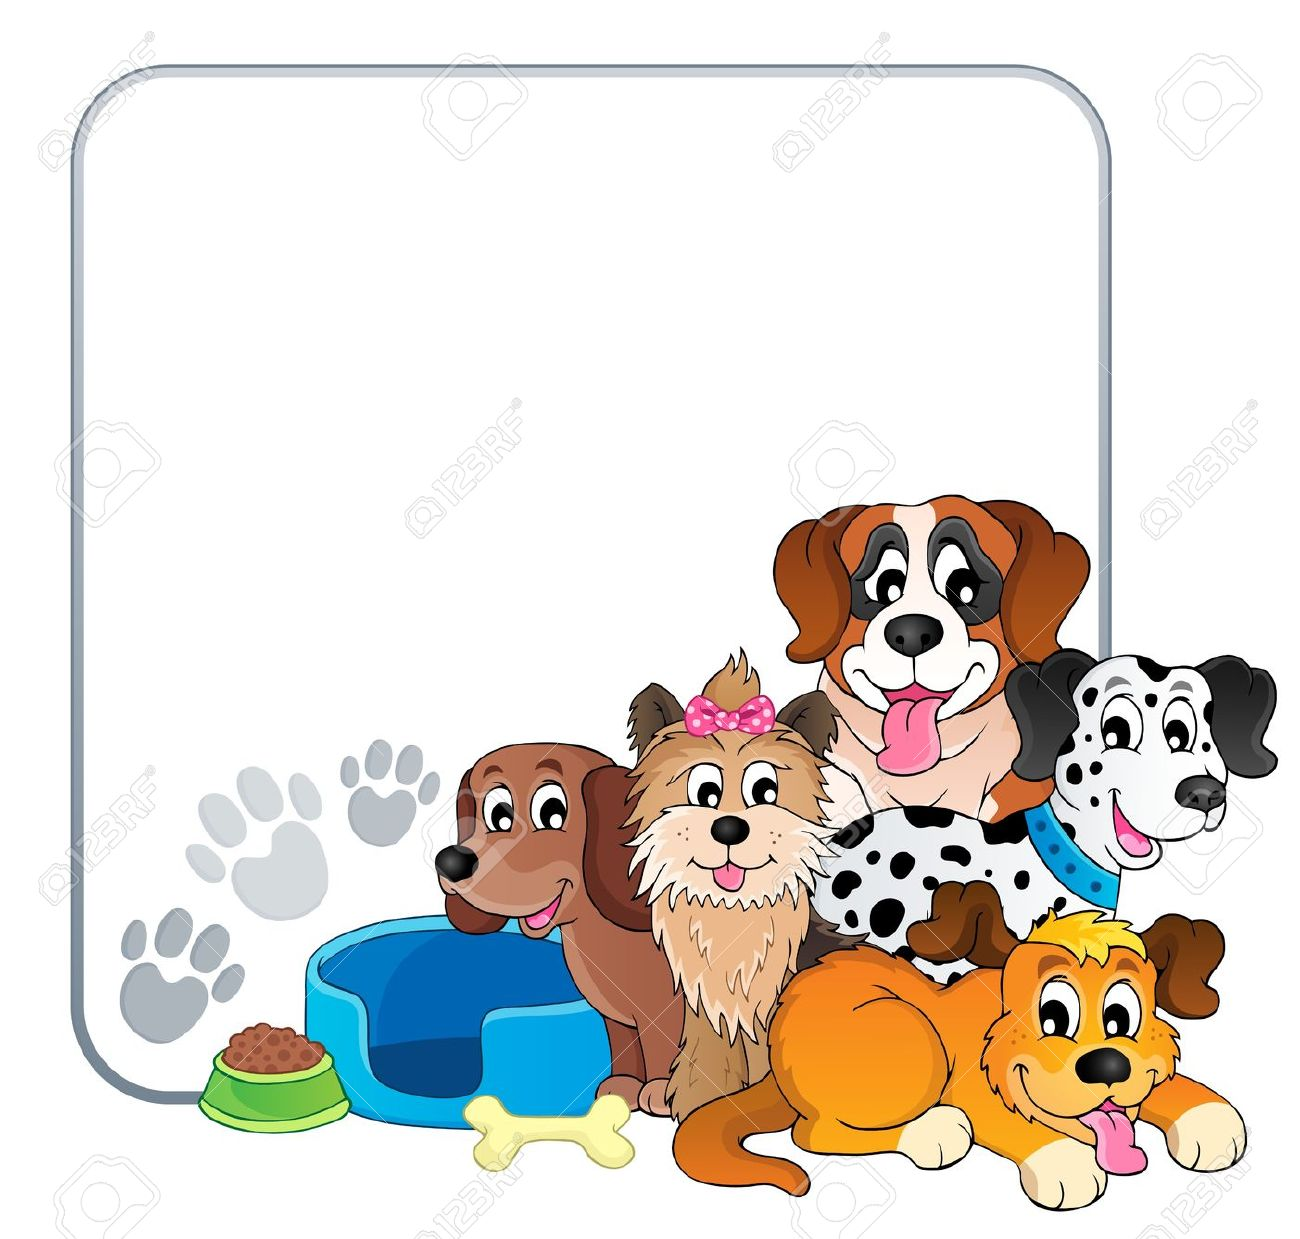 Pets clipart boarder Frames With Screensaver Border Pets